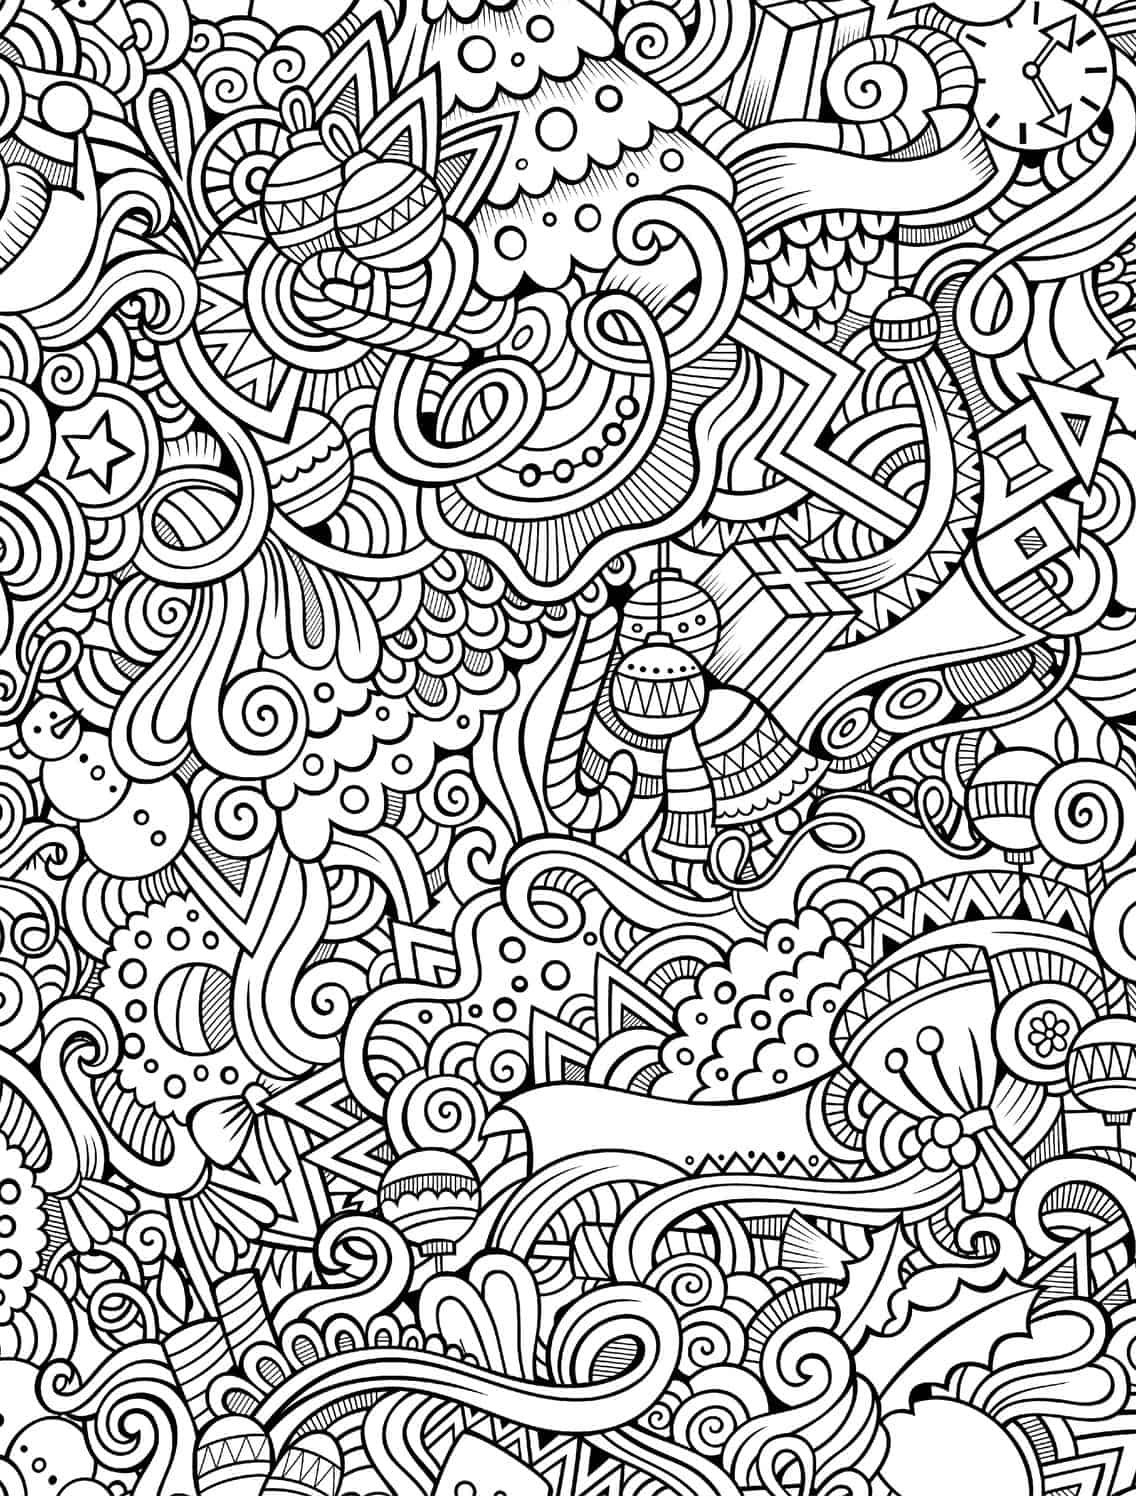 easy adult coloring pages for christmas small - Free Printable Coloring Sheets For Christmas